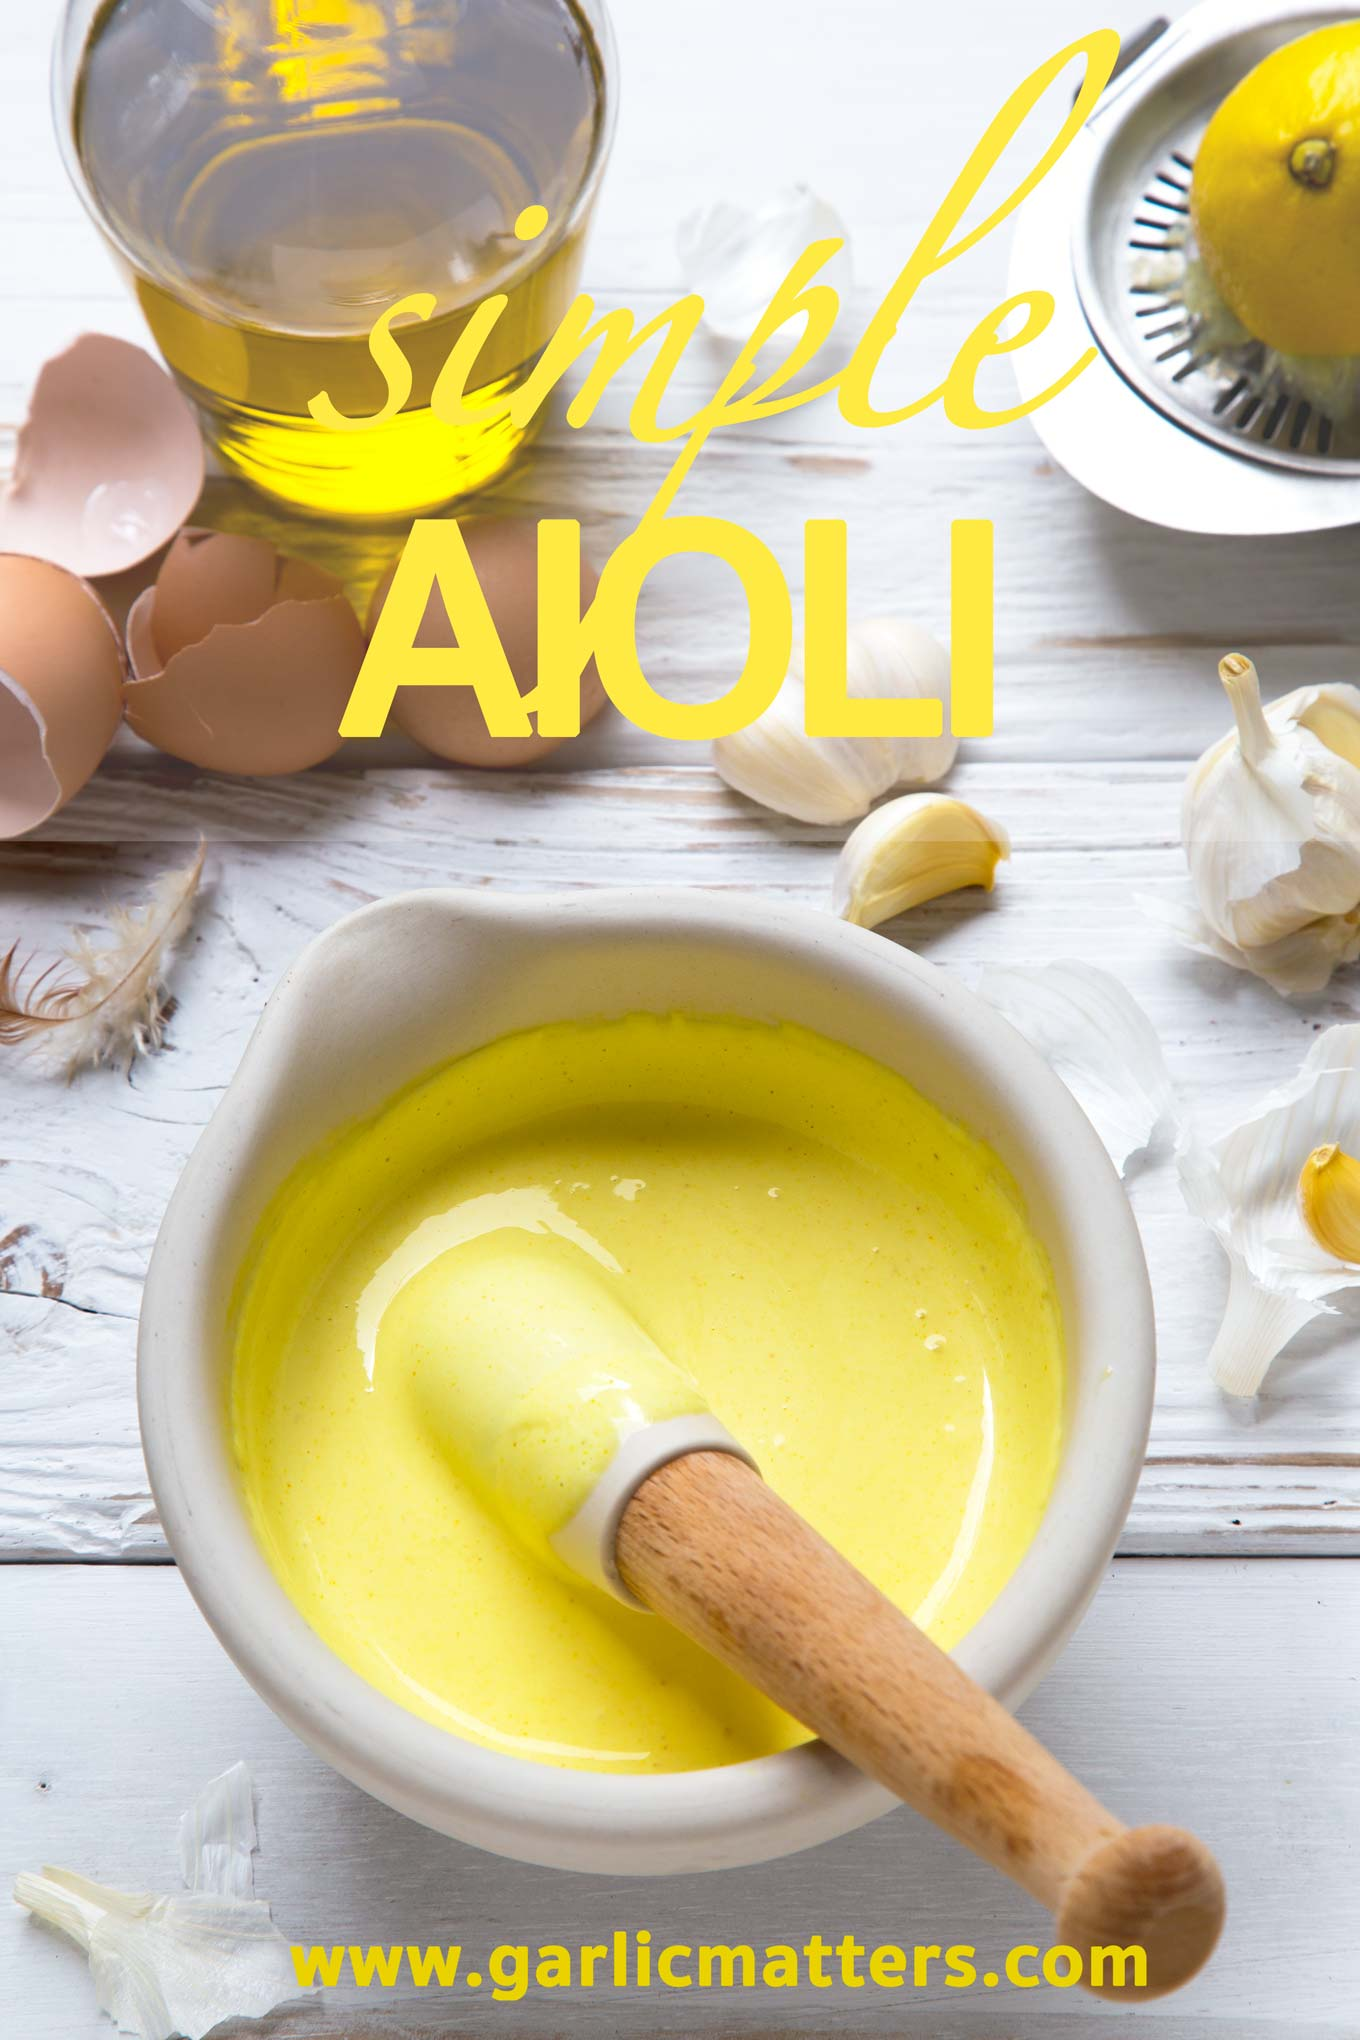 Freshly made aioli can really complement any seafood or vegetable dish. This easy, 15 min recipe works also as a dip or sauce for burgers.